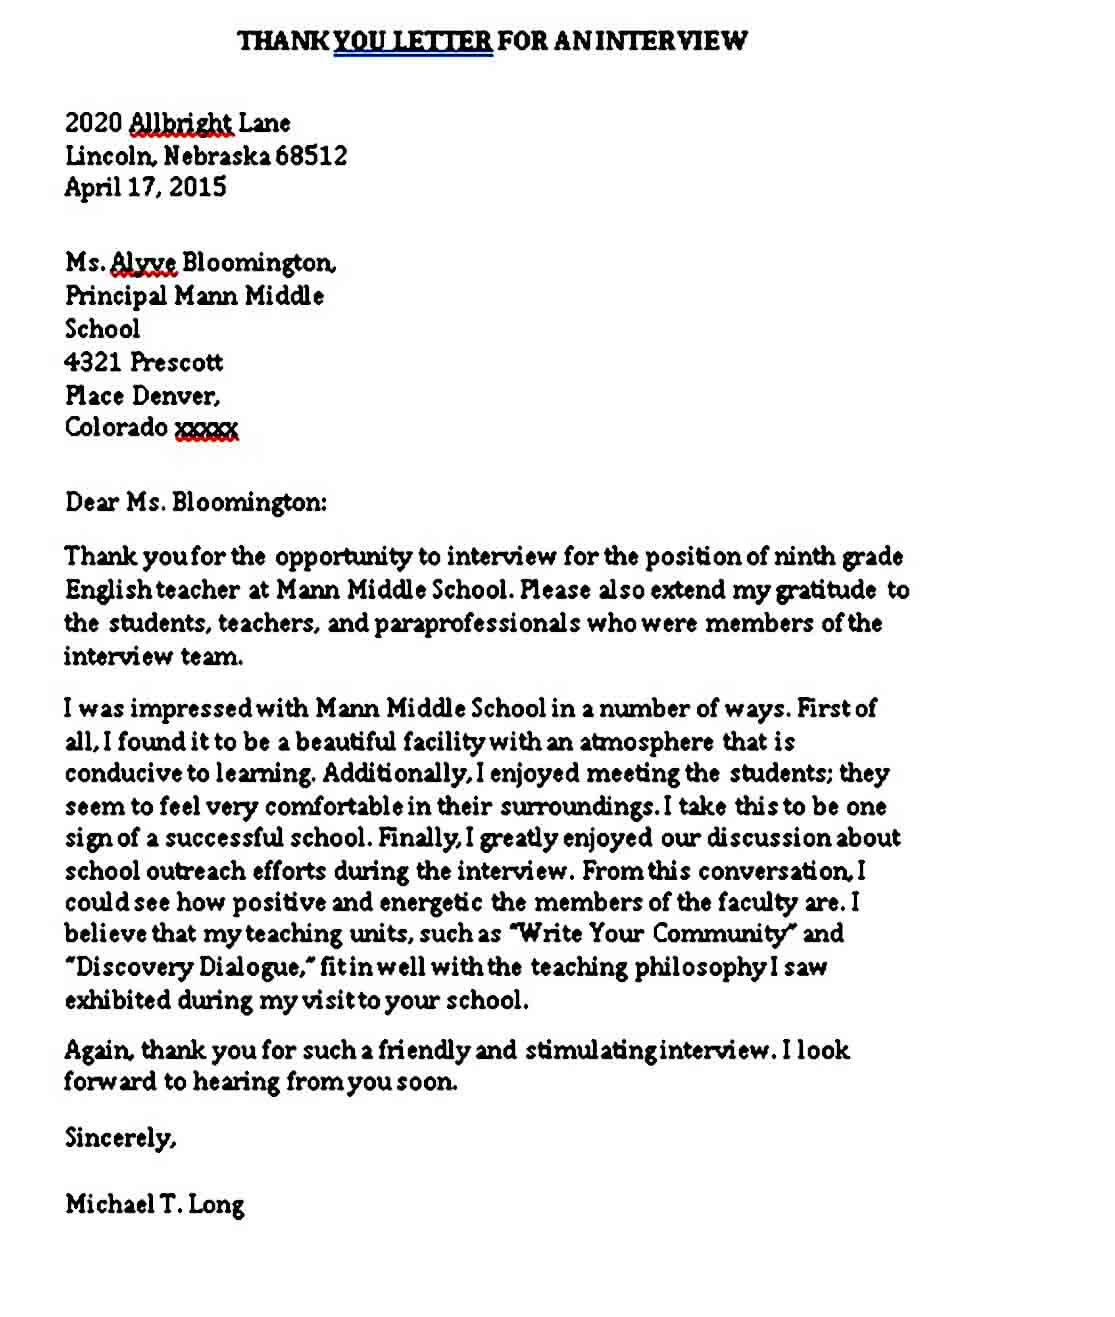 Example of Teacher Interview Thank You Letter